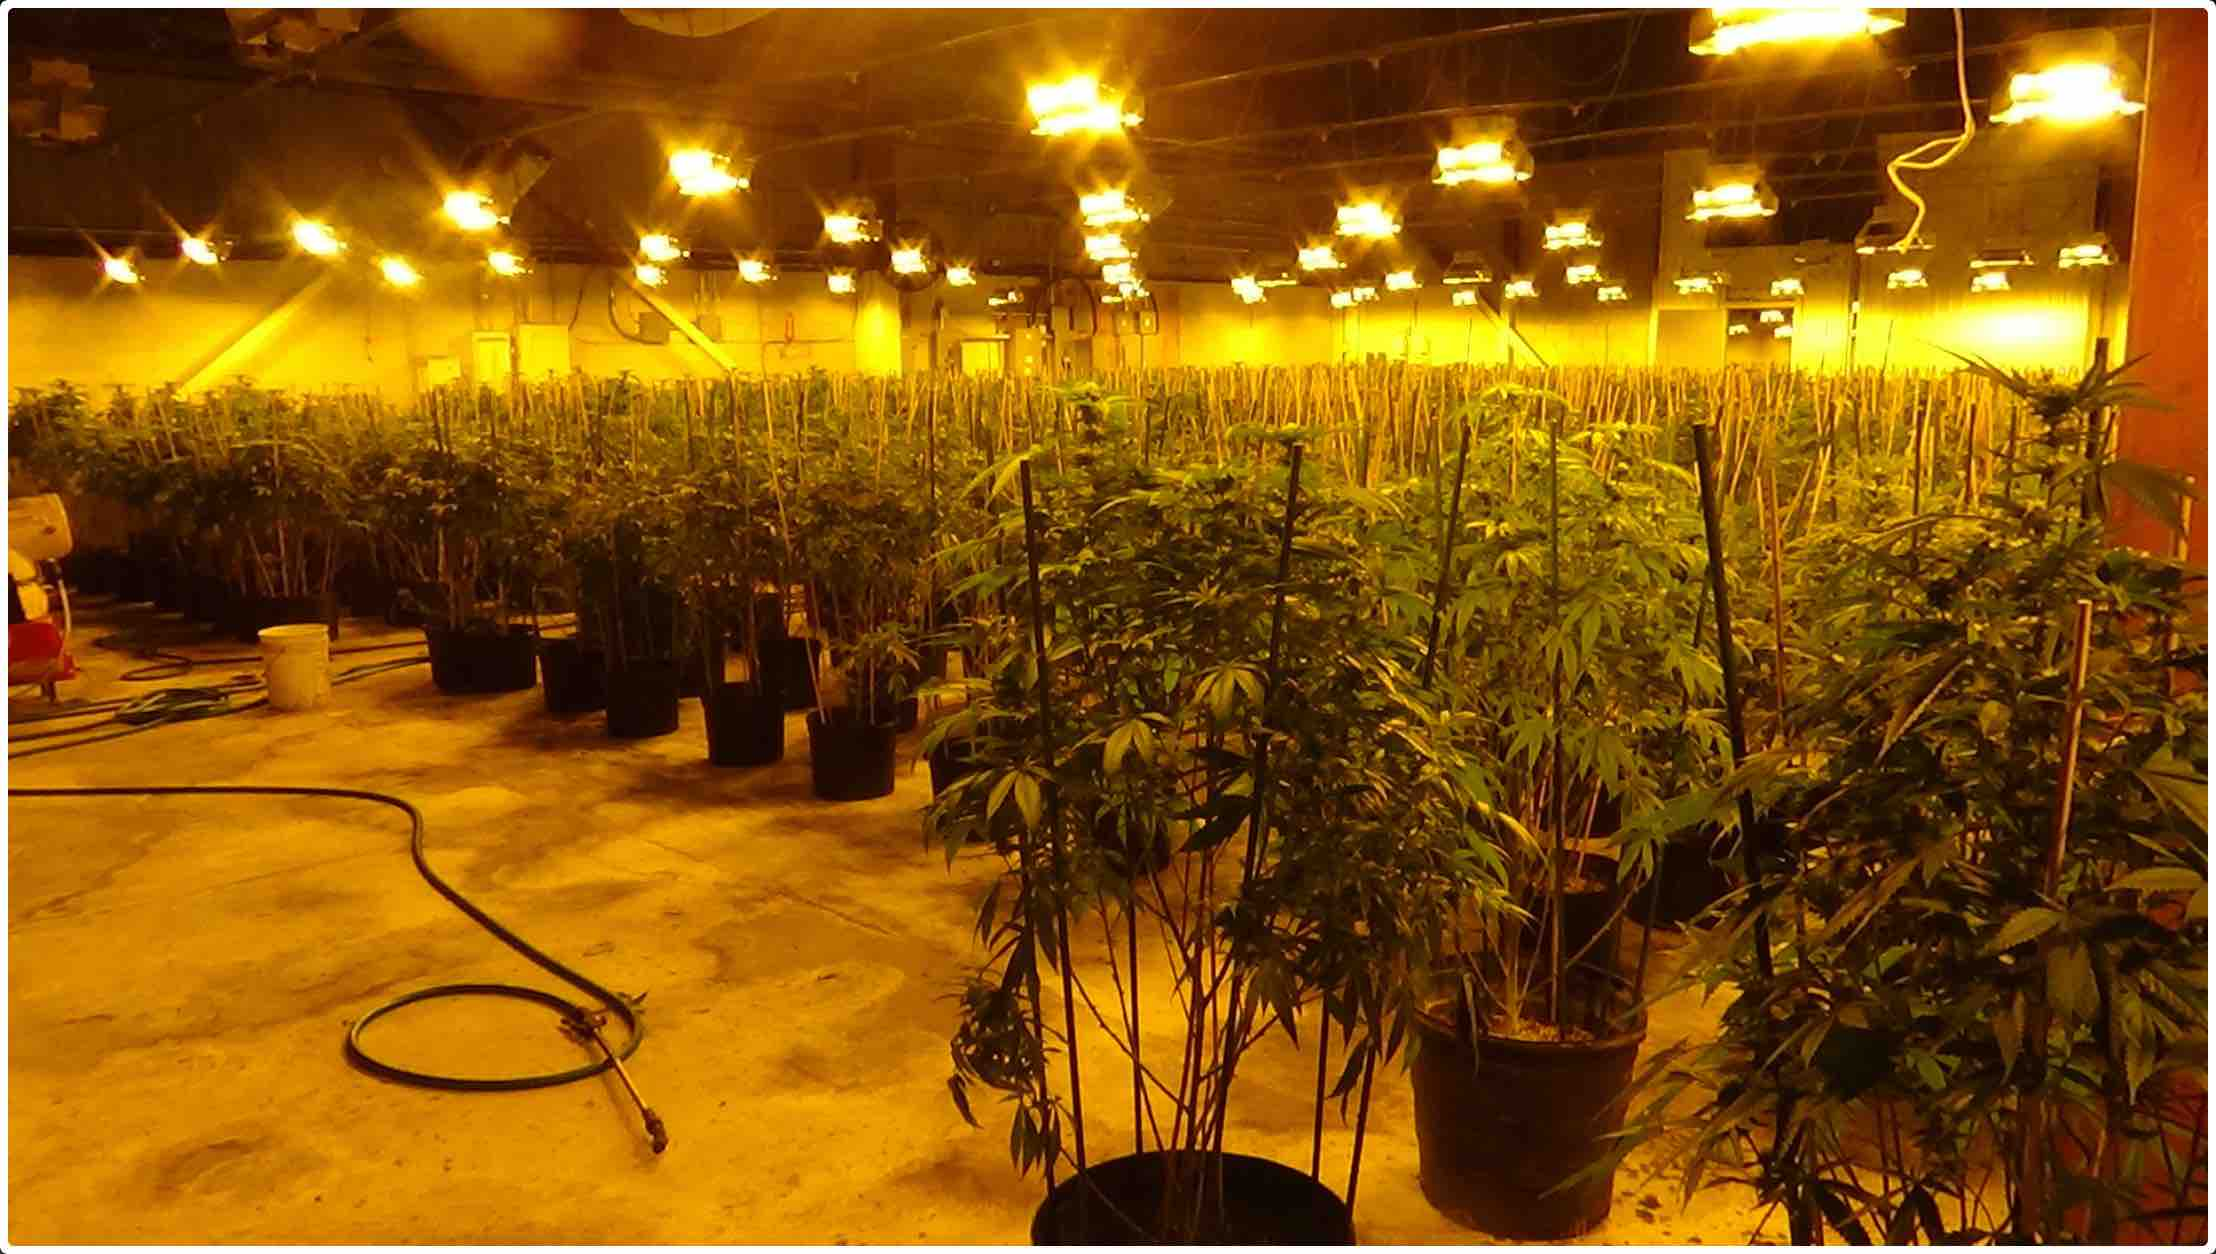 Ontario police seize more than $5 million worth of cannabis plants from London property